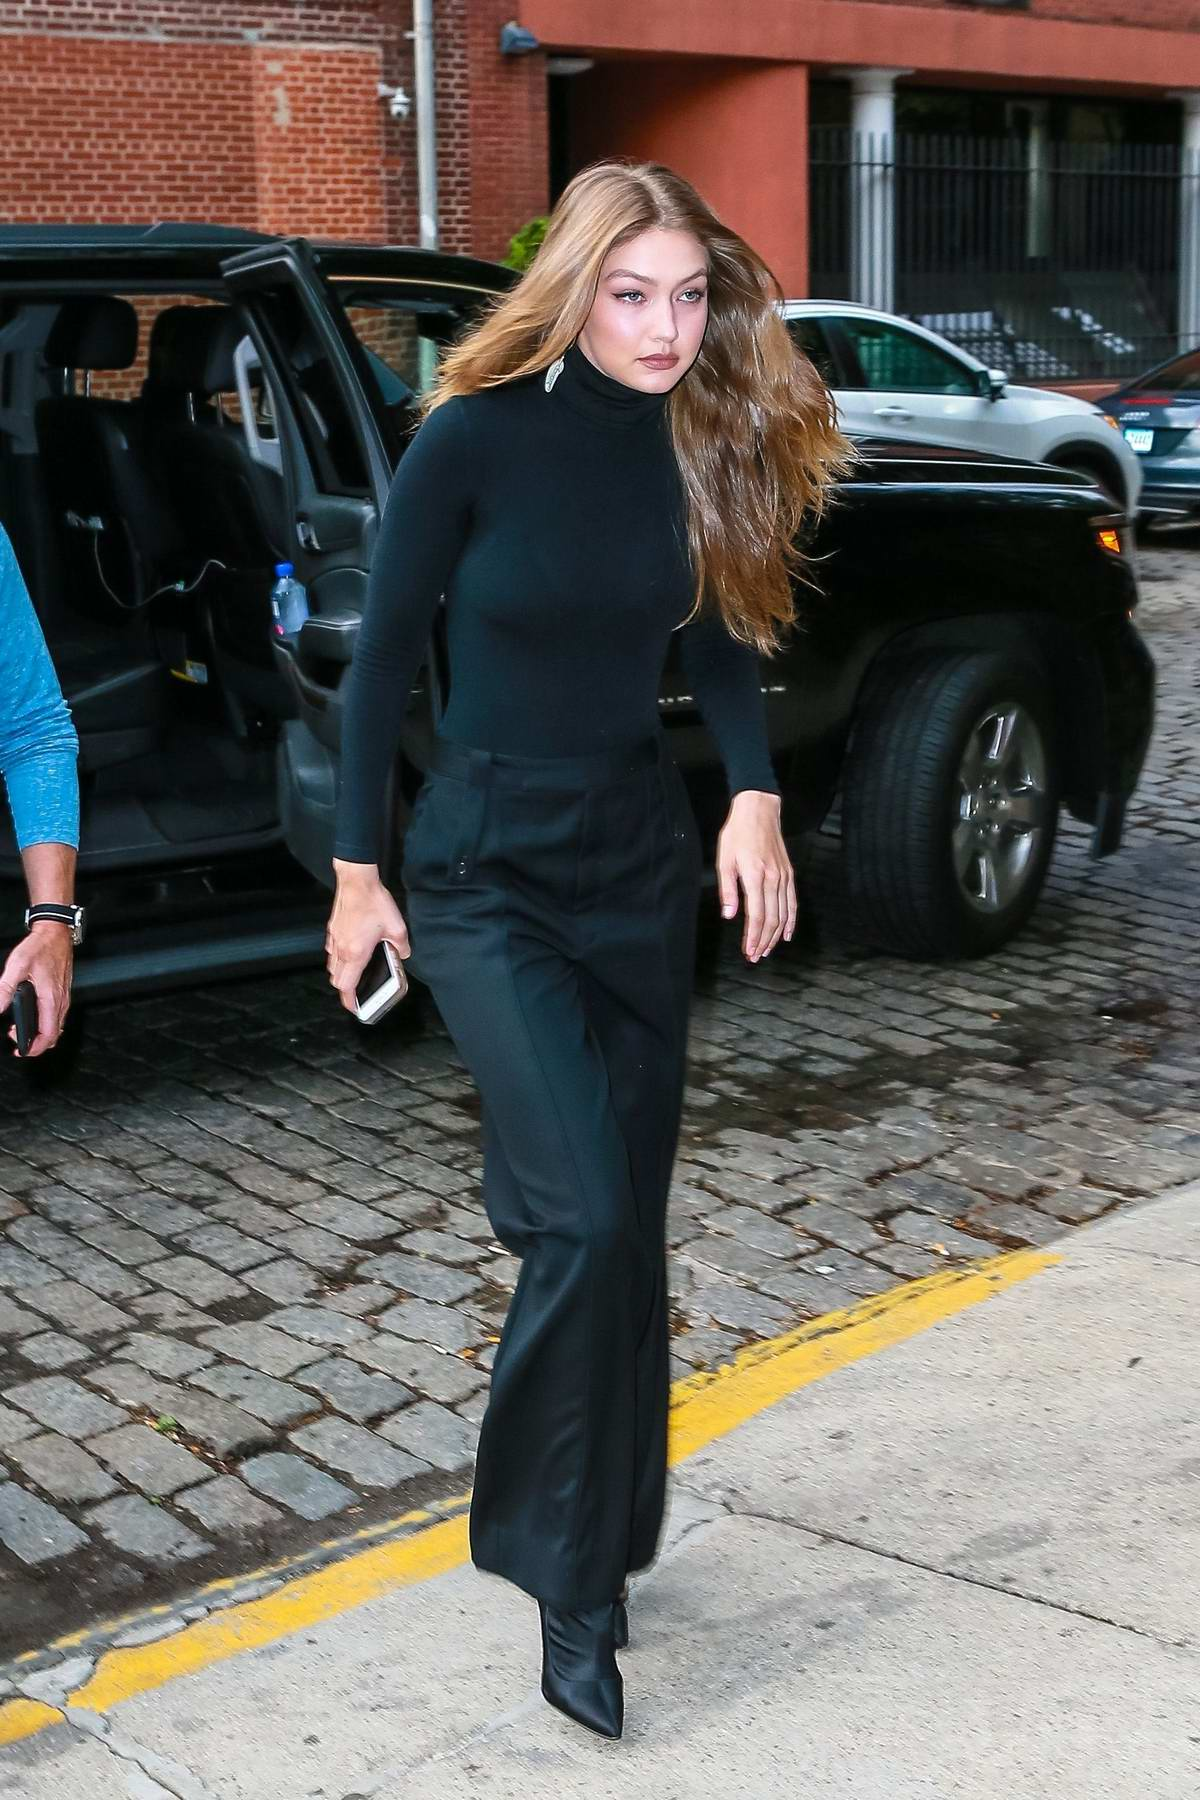 Gigi Hadid dons an all-black ensemble for an event in New York City